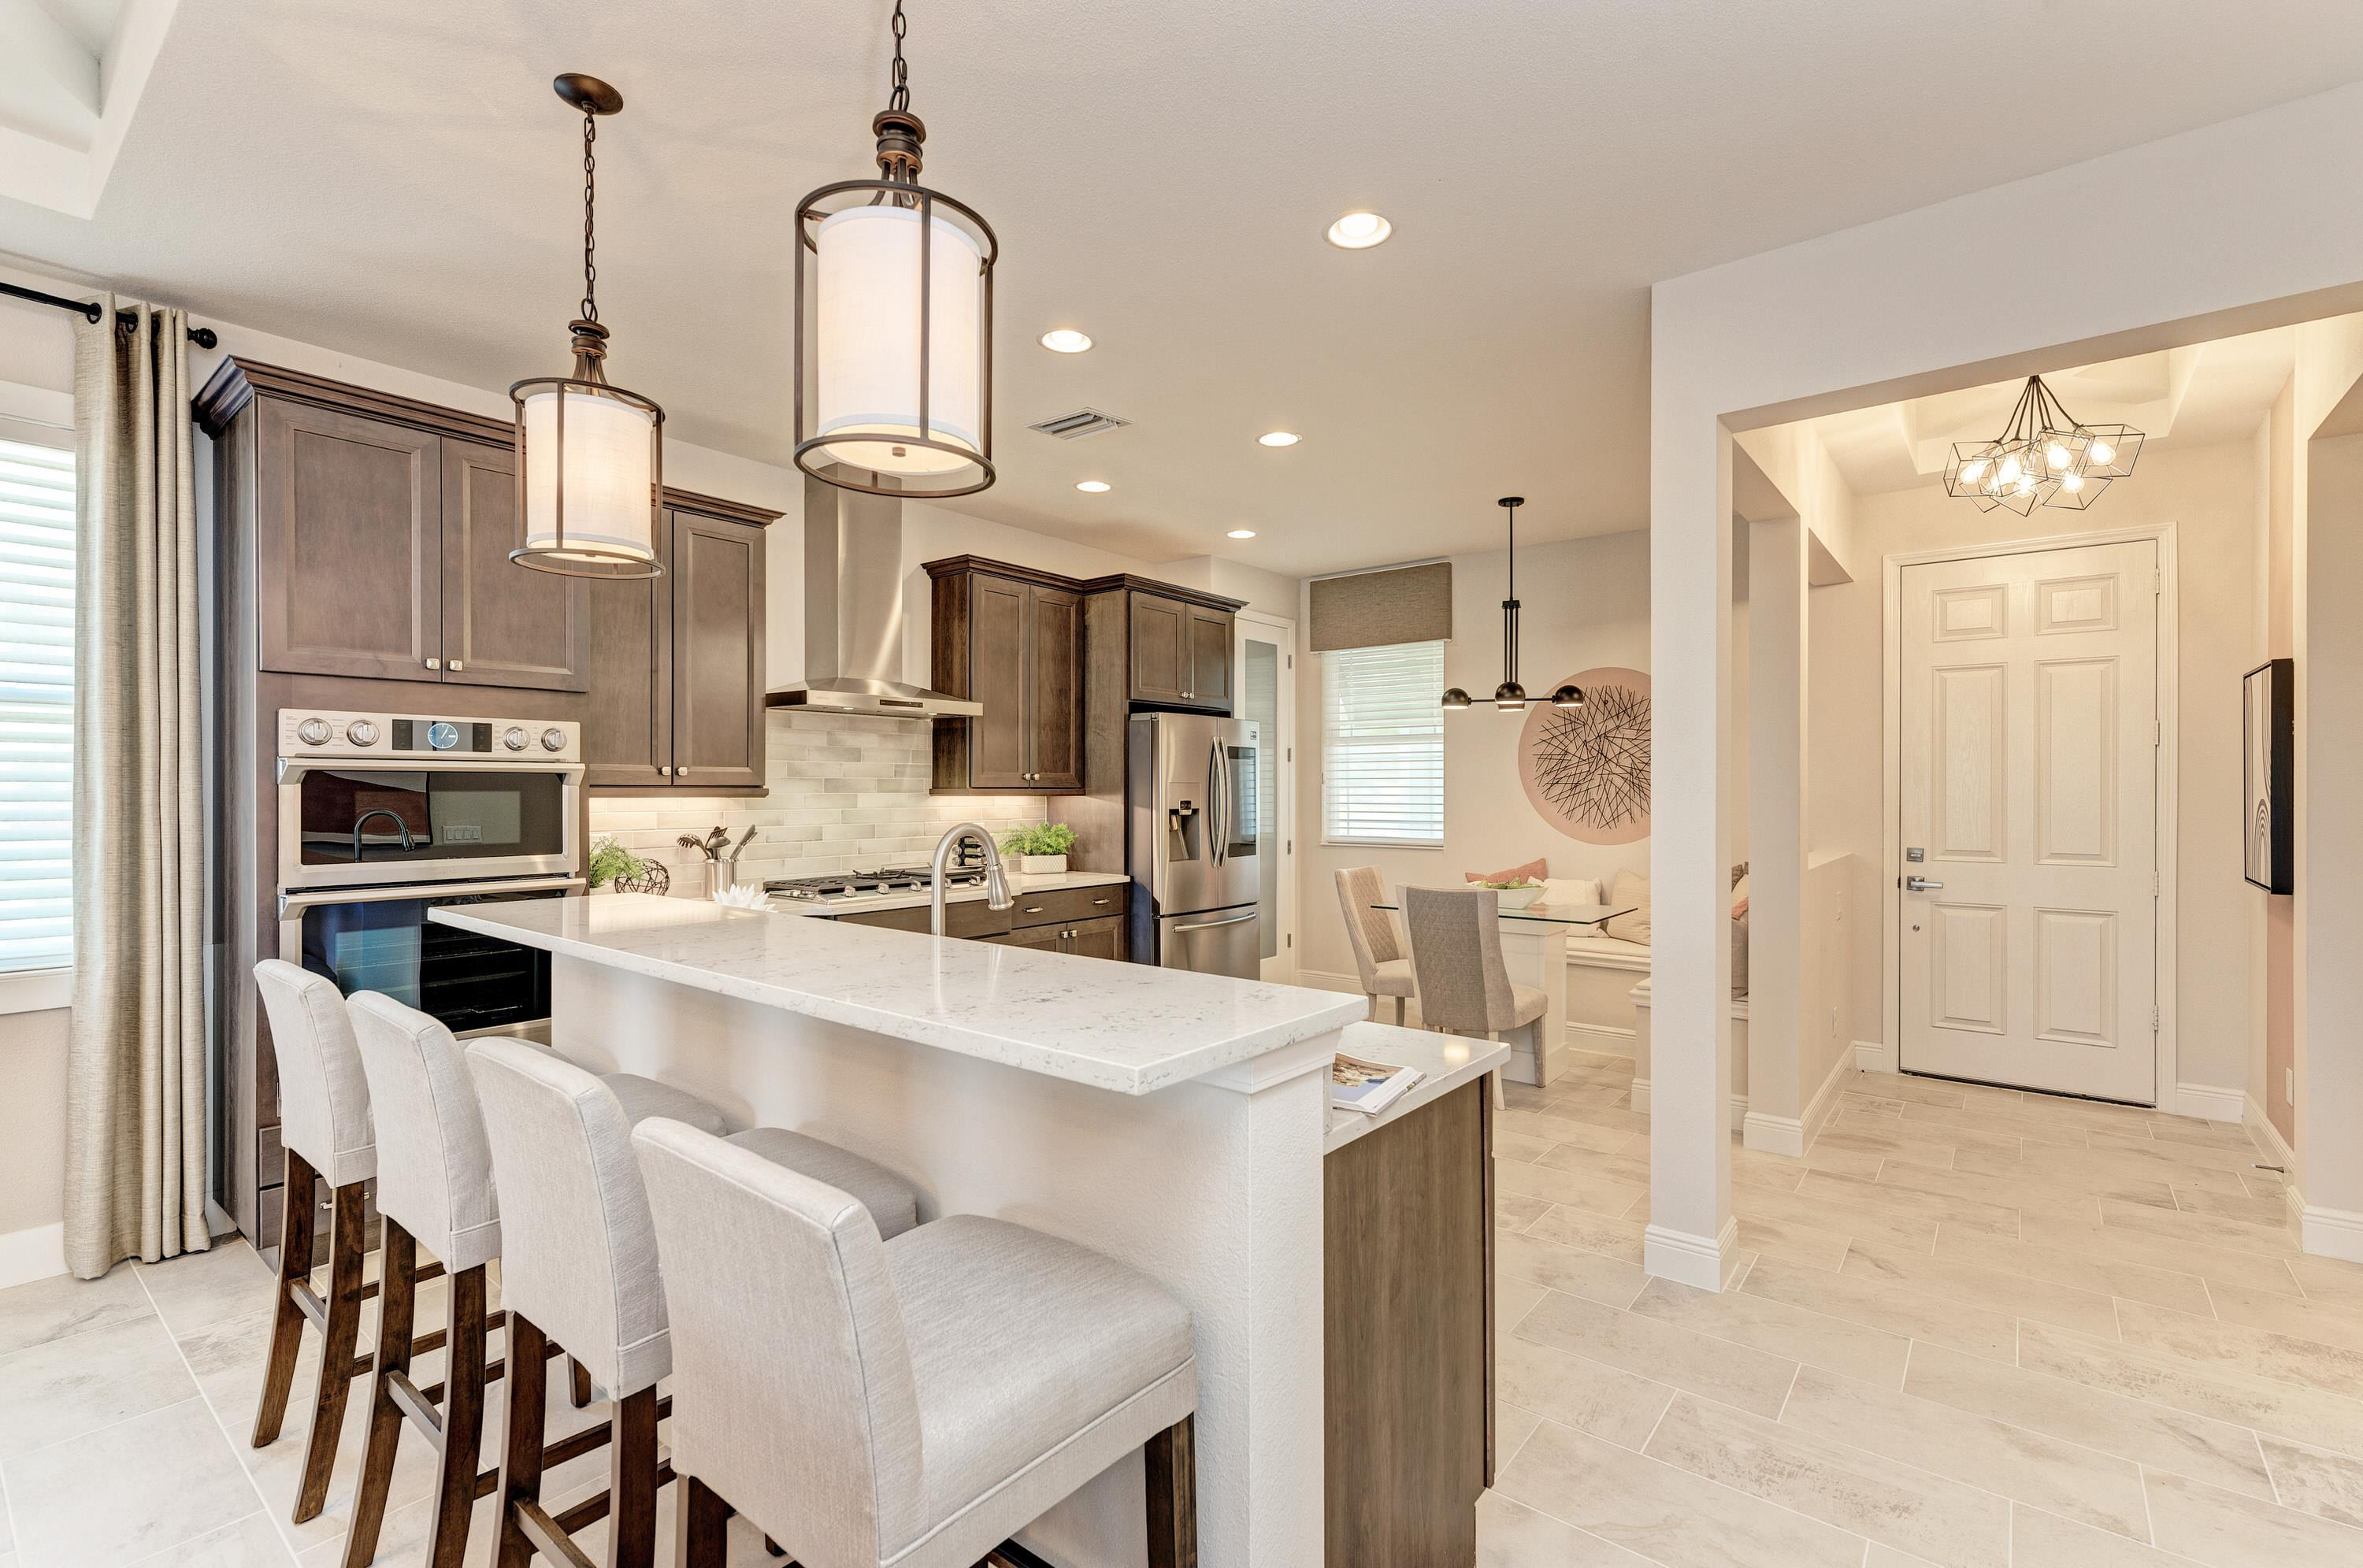 Kitchen featured in the Sanibel Villa Home By Medallion Home in Sarasota-Bradenton, FL